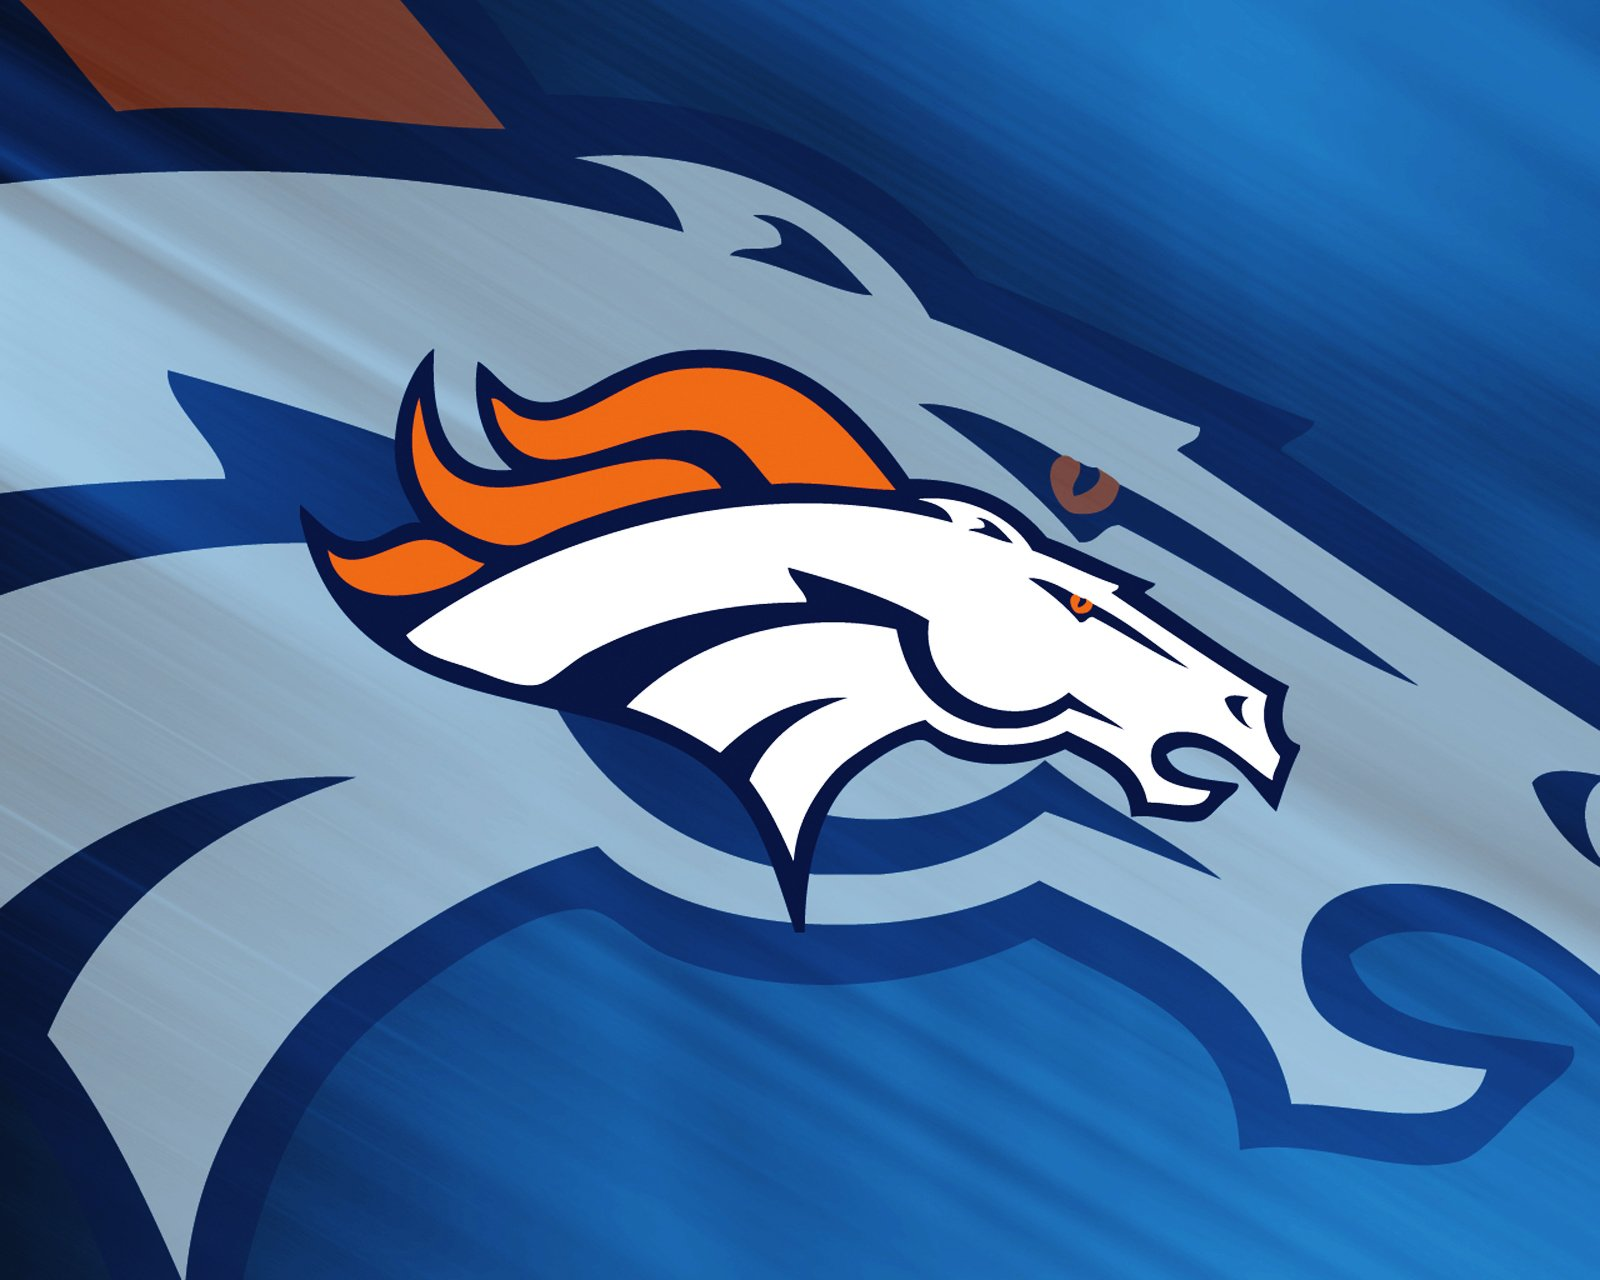 Denver Broncos Logo HD Wallpapers Download Wallpapers in HD for 1600x1280